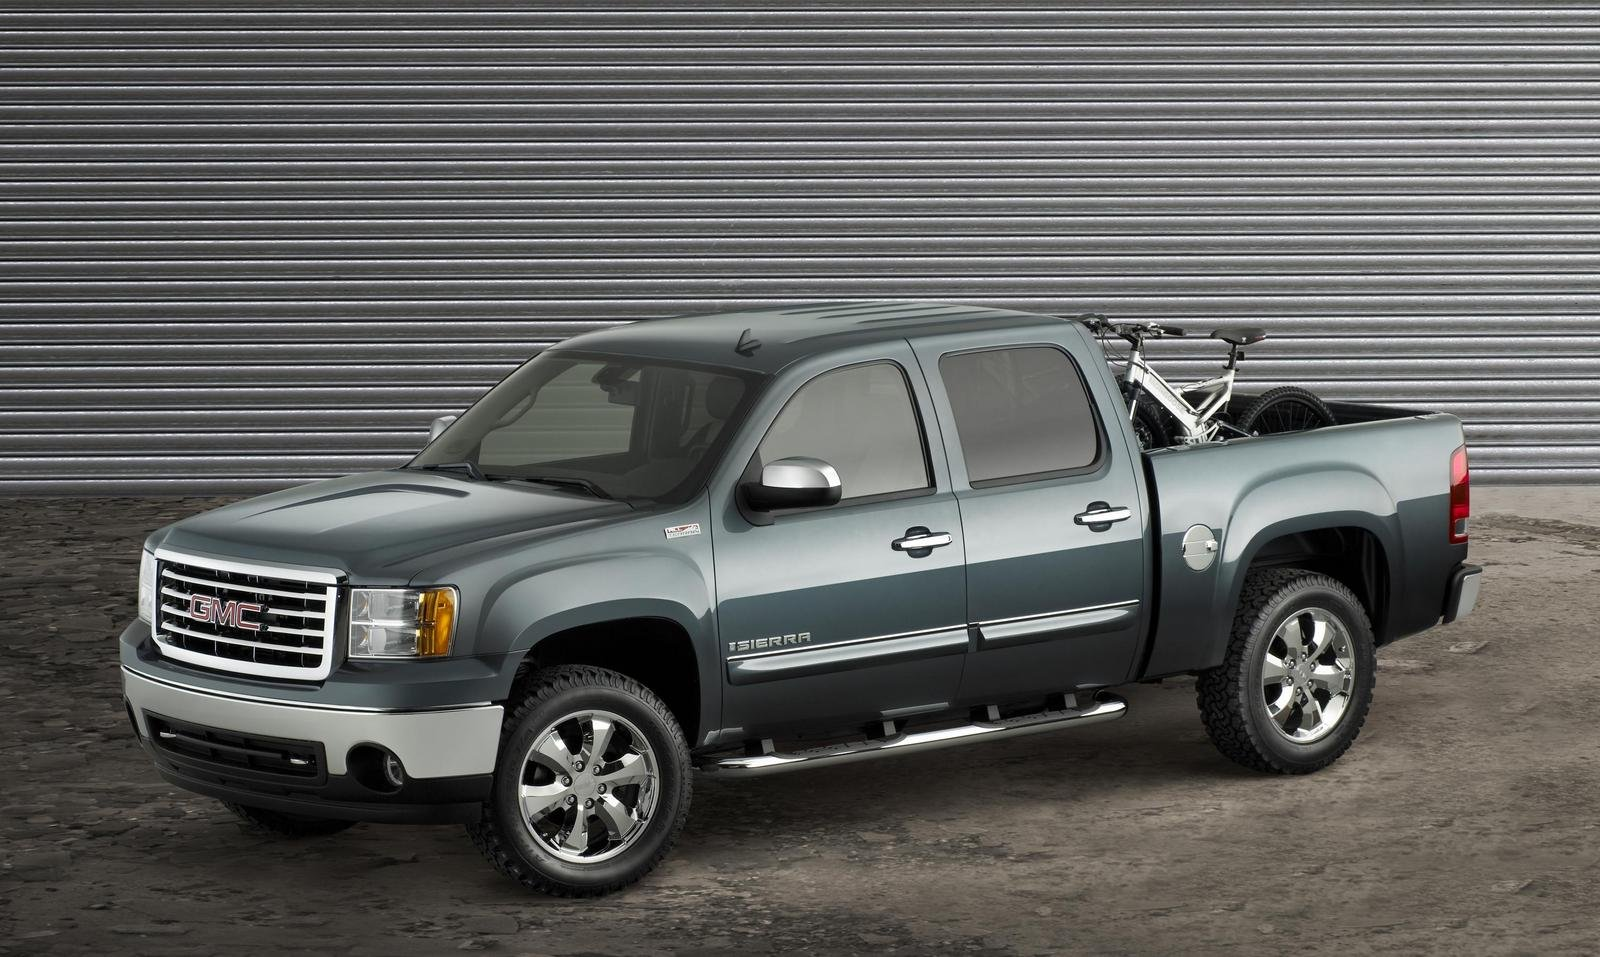 2007 gmc sierra all terrain crew cab review top speed. Black Bedroom Furniture Sets. Home Design Ideas